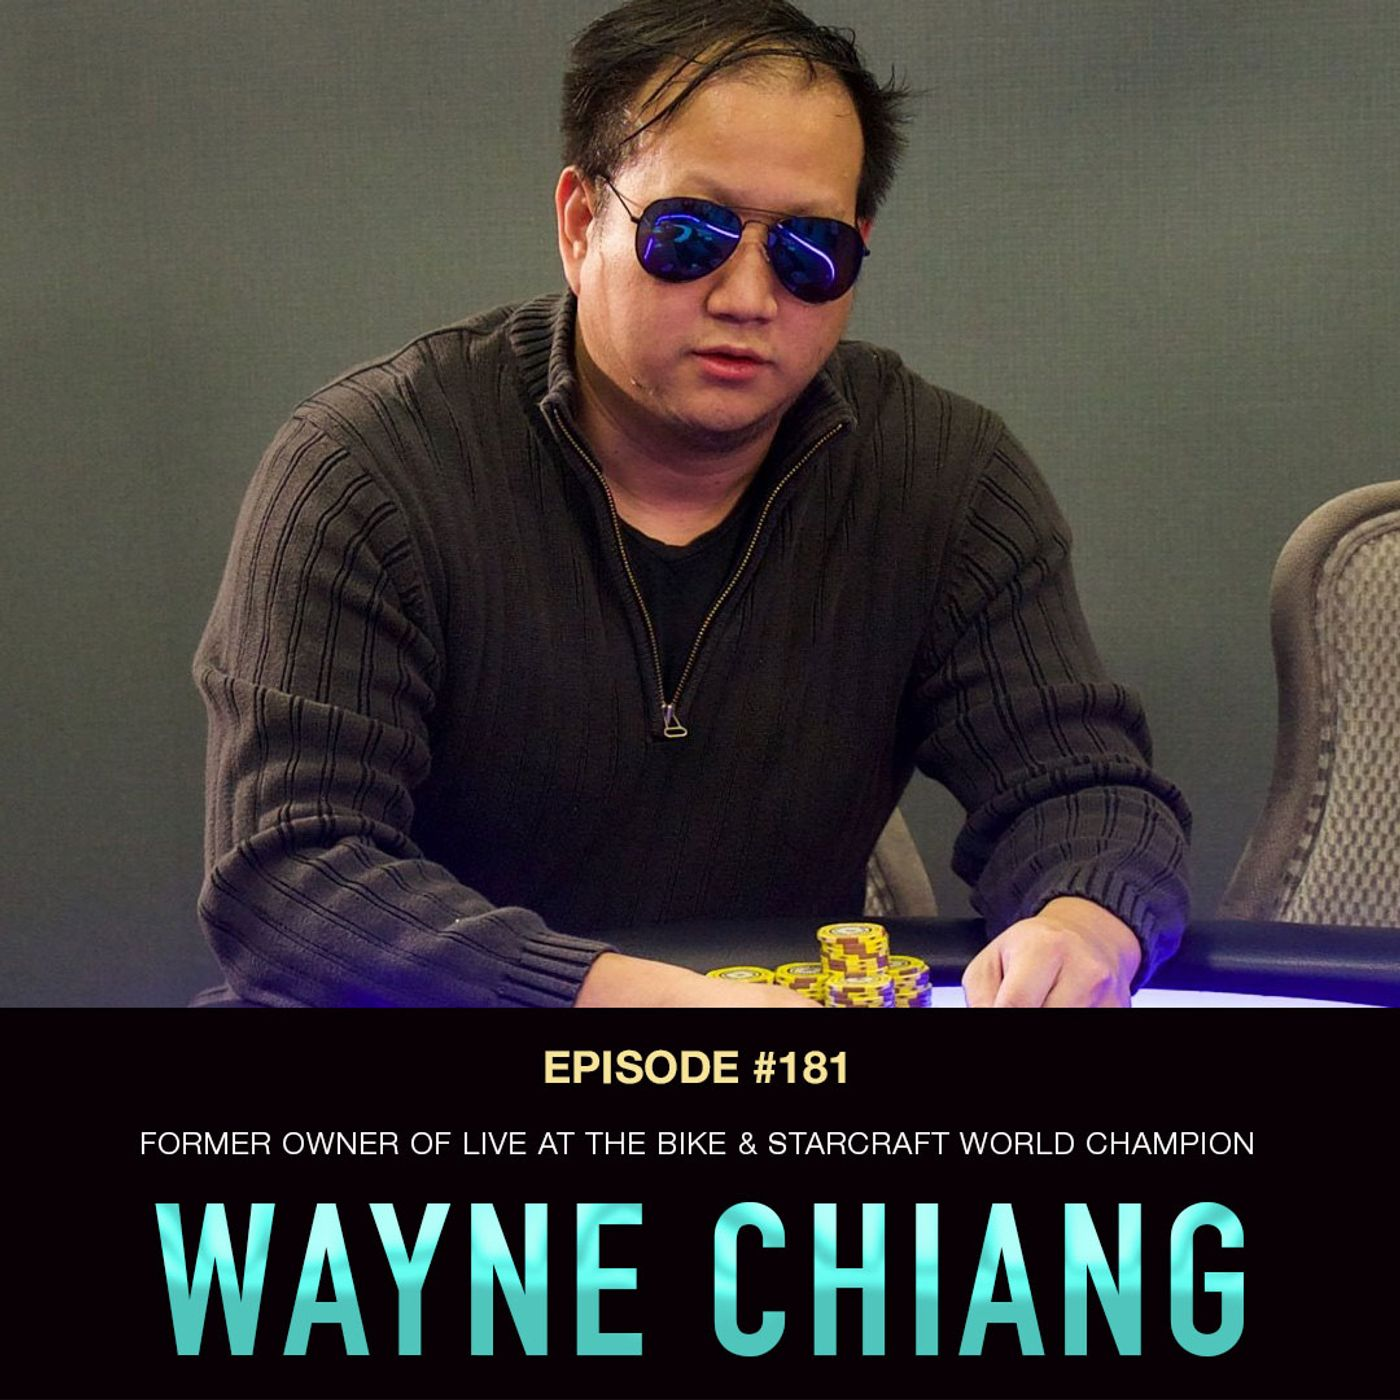 #181 Wayne Chiang: Former Owner of Live at the Bike & Starcraft World Champion